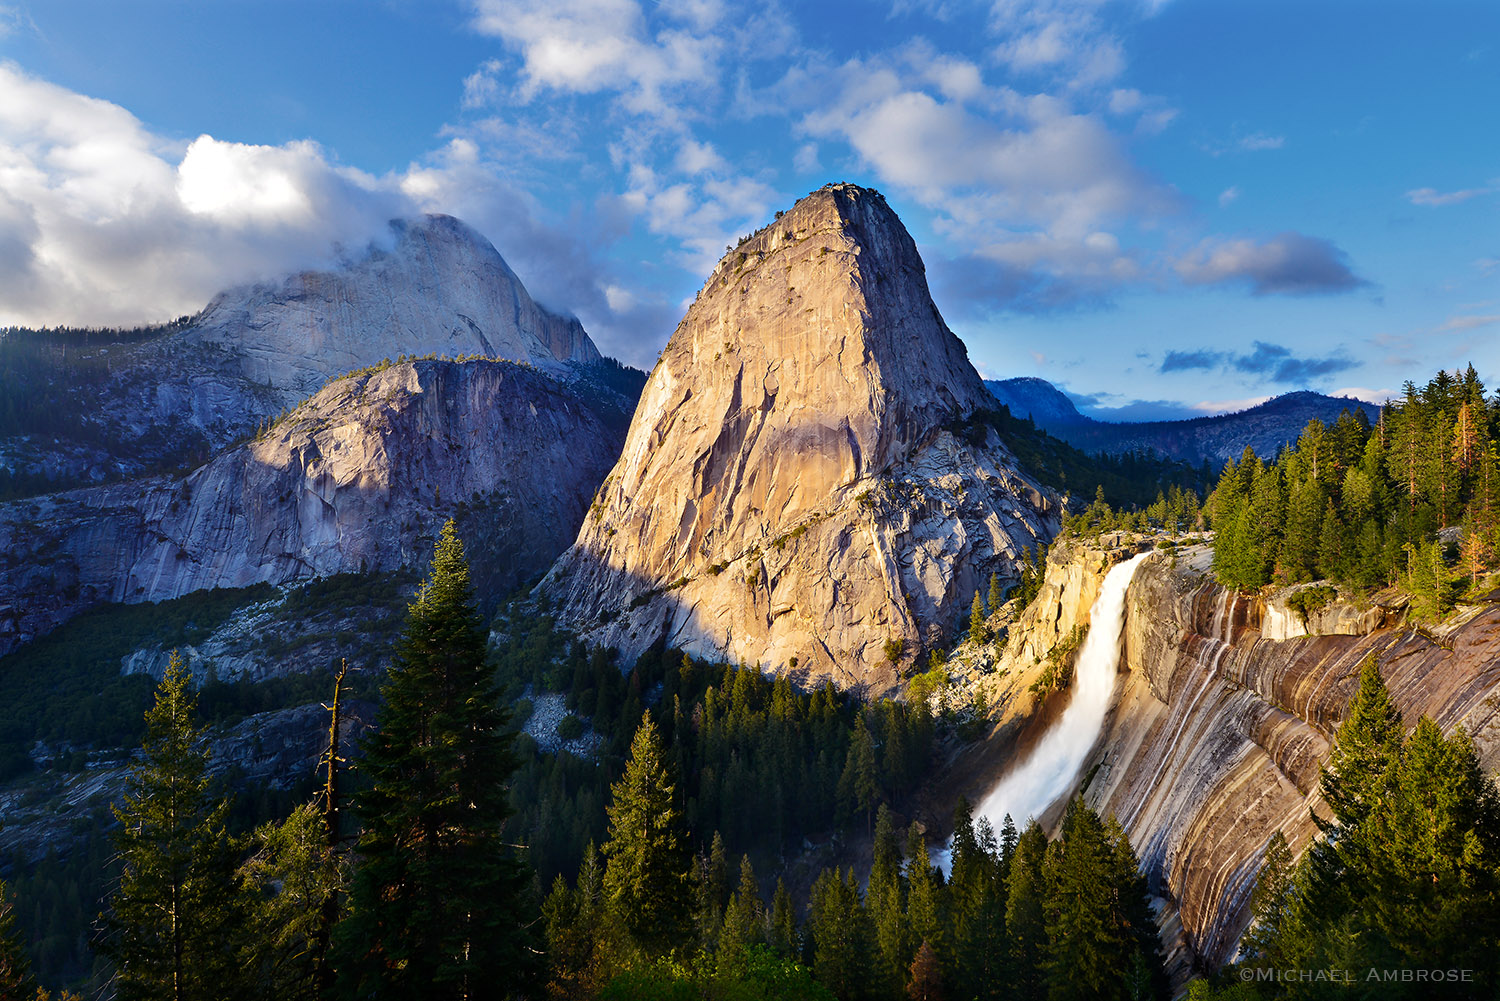 Springtime in Yosemite boasts a rushing water and glowing granite; Nevada fall, Liberty Cap, and Mt. Broderick bask in stormy light